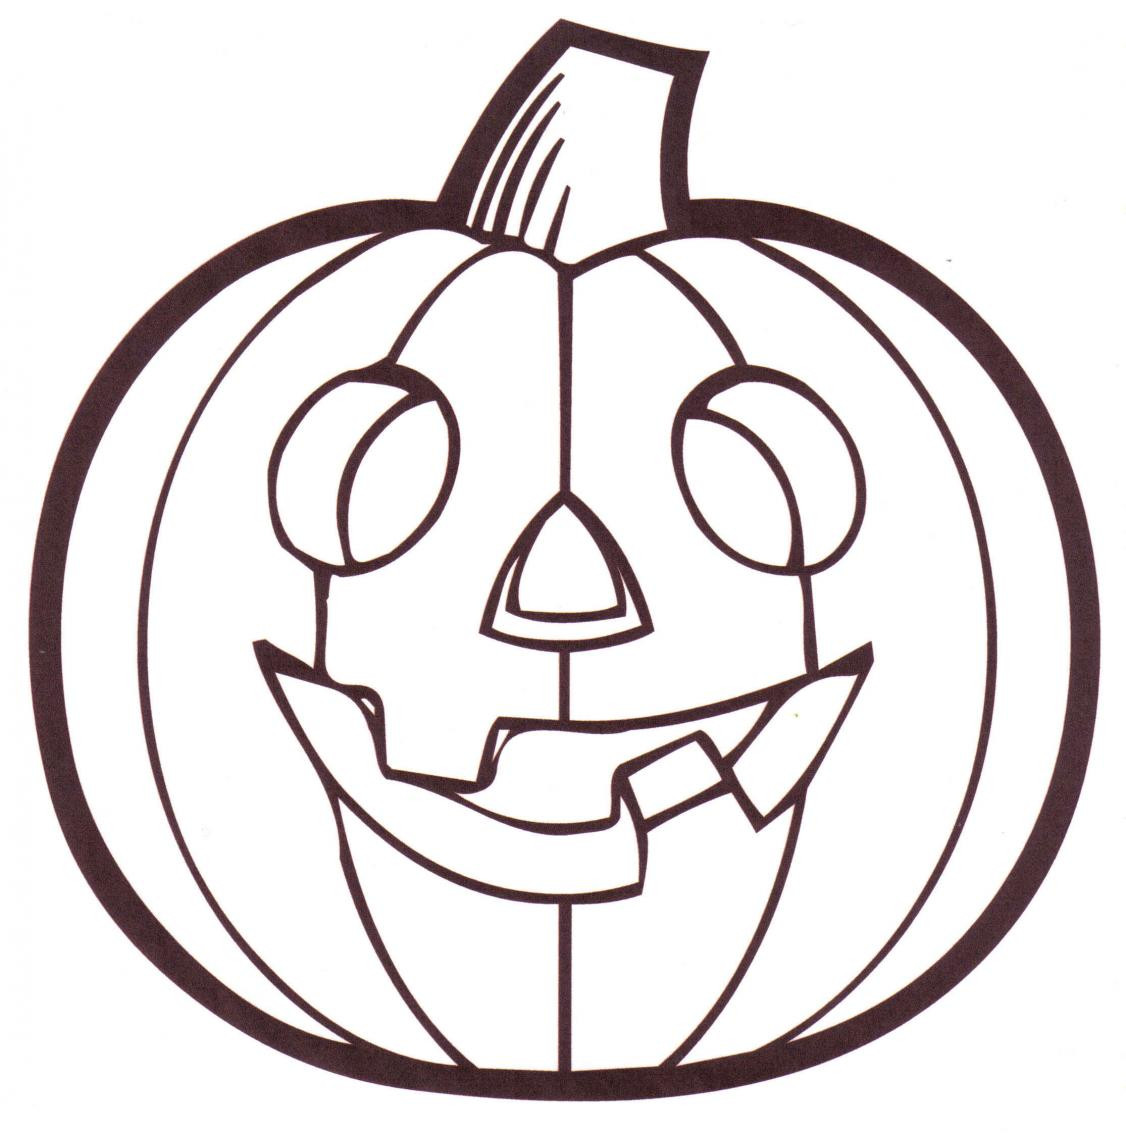 Free Pumpkin Coloring Pages  Free Printable Pumpkin Coloring Pages For Kids